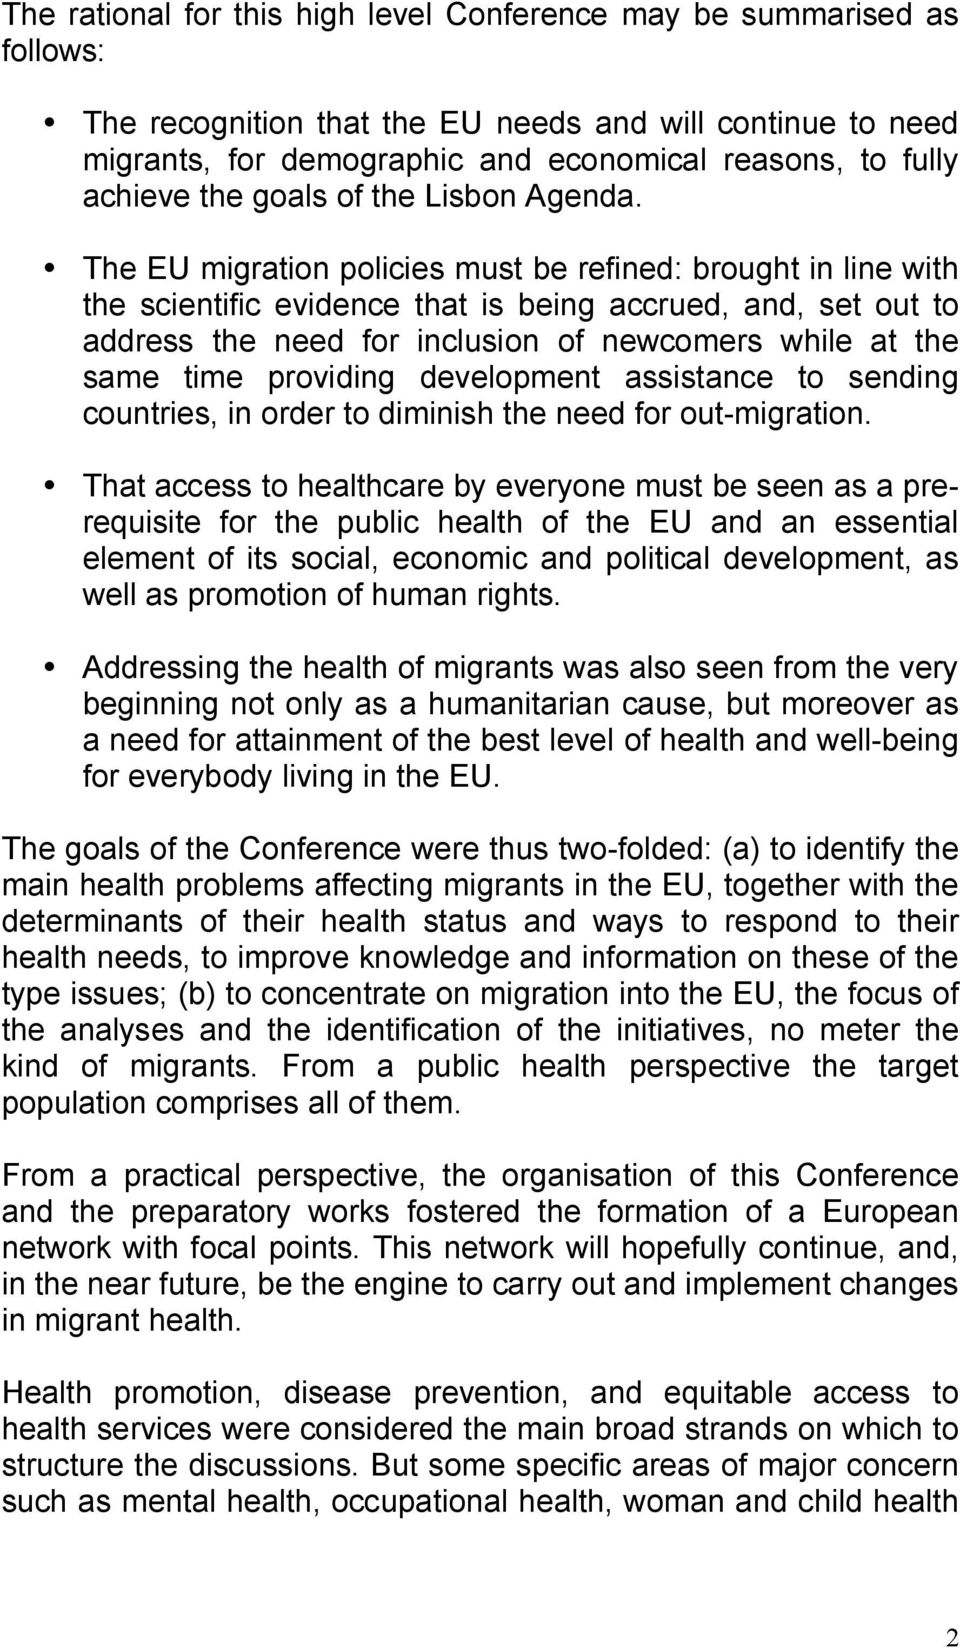 The EU migration policies must be refined: brought in line with the scientific evidence that is being accrued, and, set out to address the need for inclusion of newcomers while at the same time